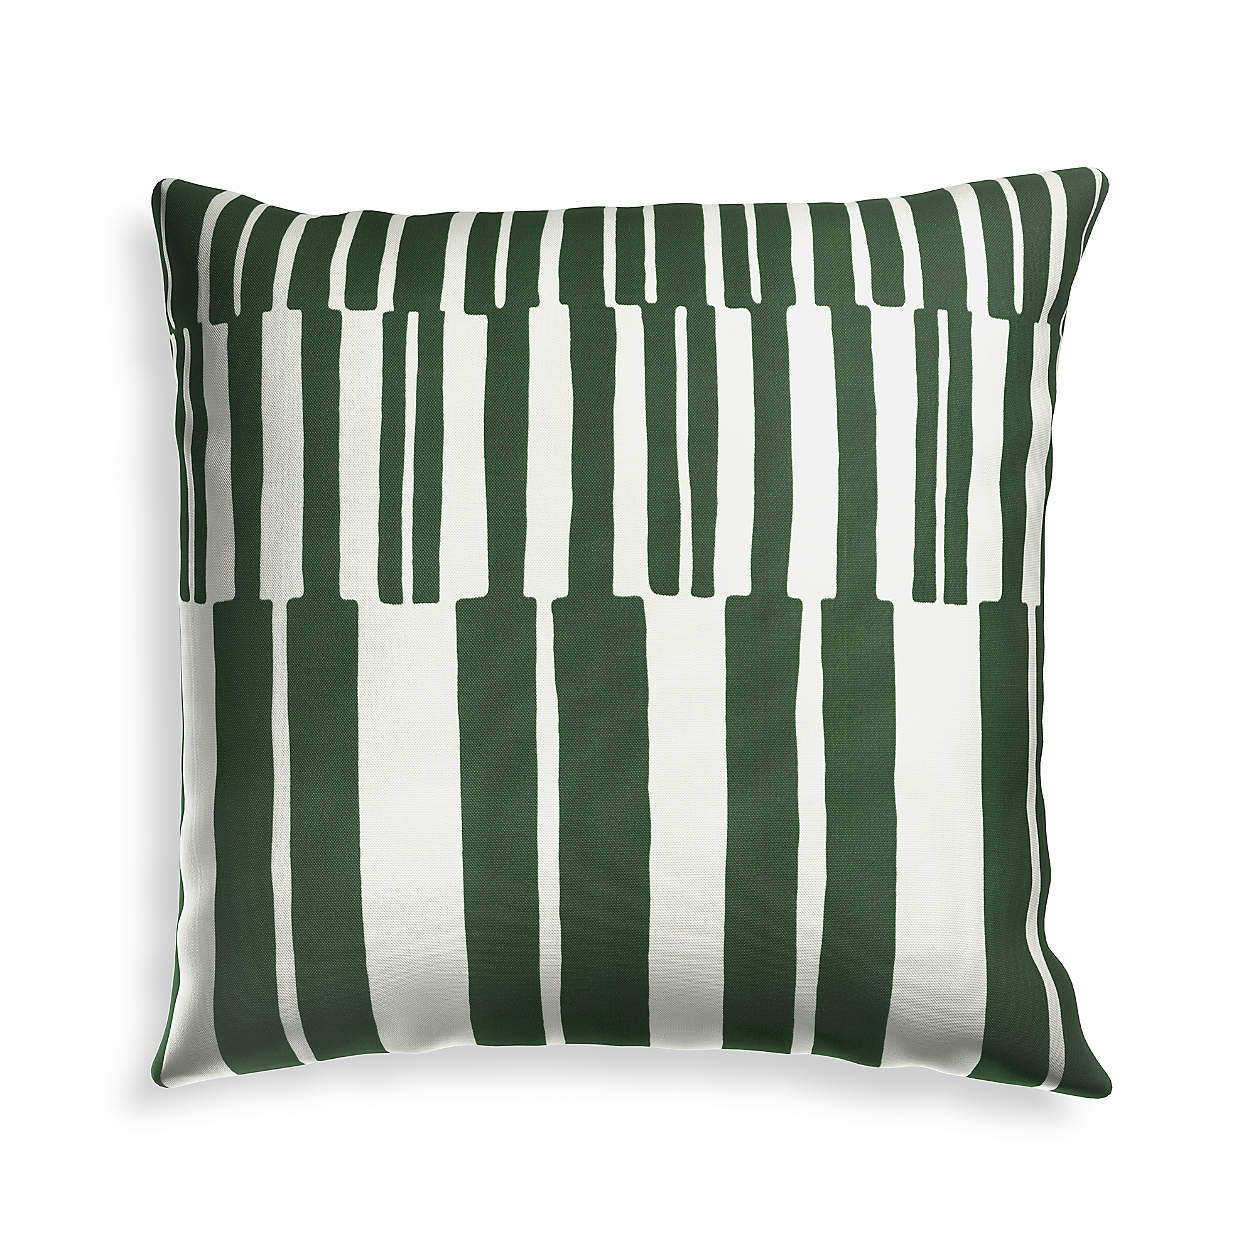 Crate and Barrel outdoor pillow